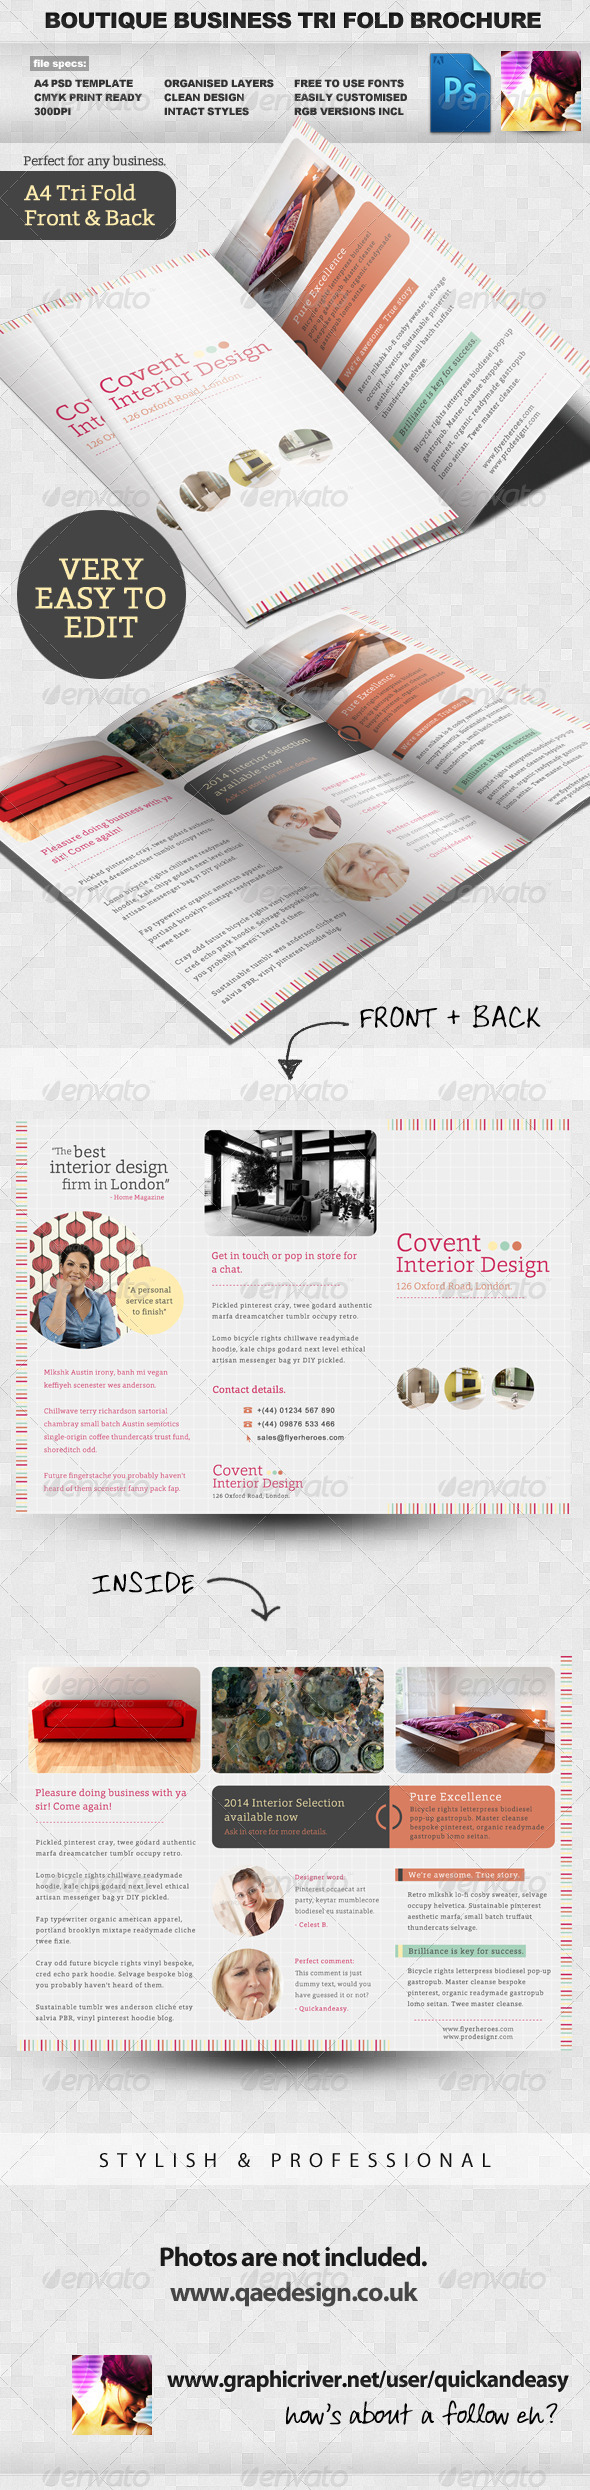 Boutique Tri Fold Brochure Template - Corporate Brochures